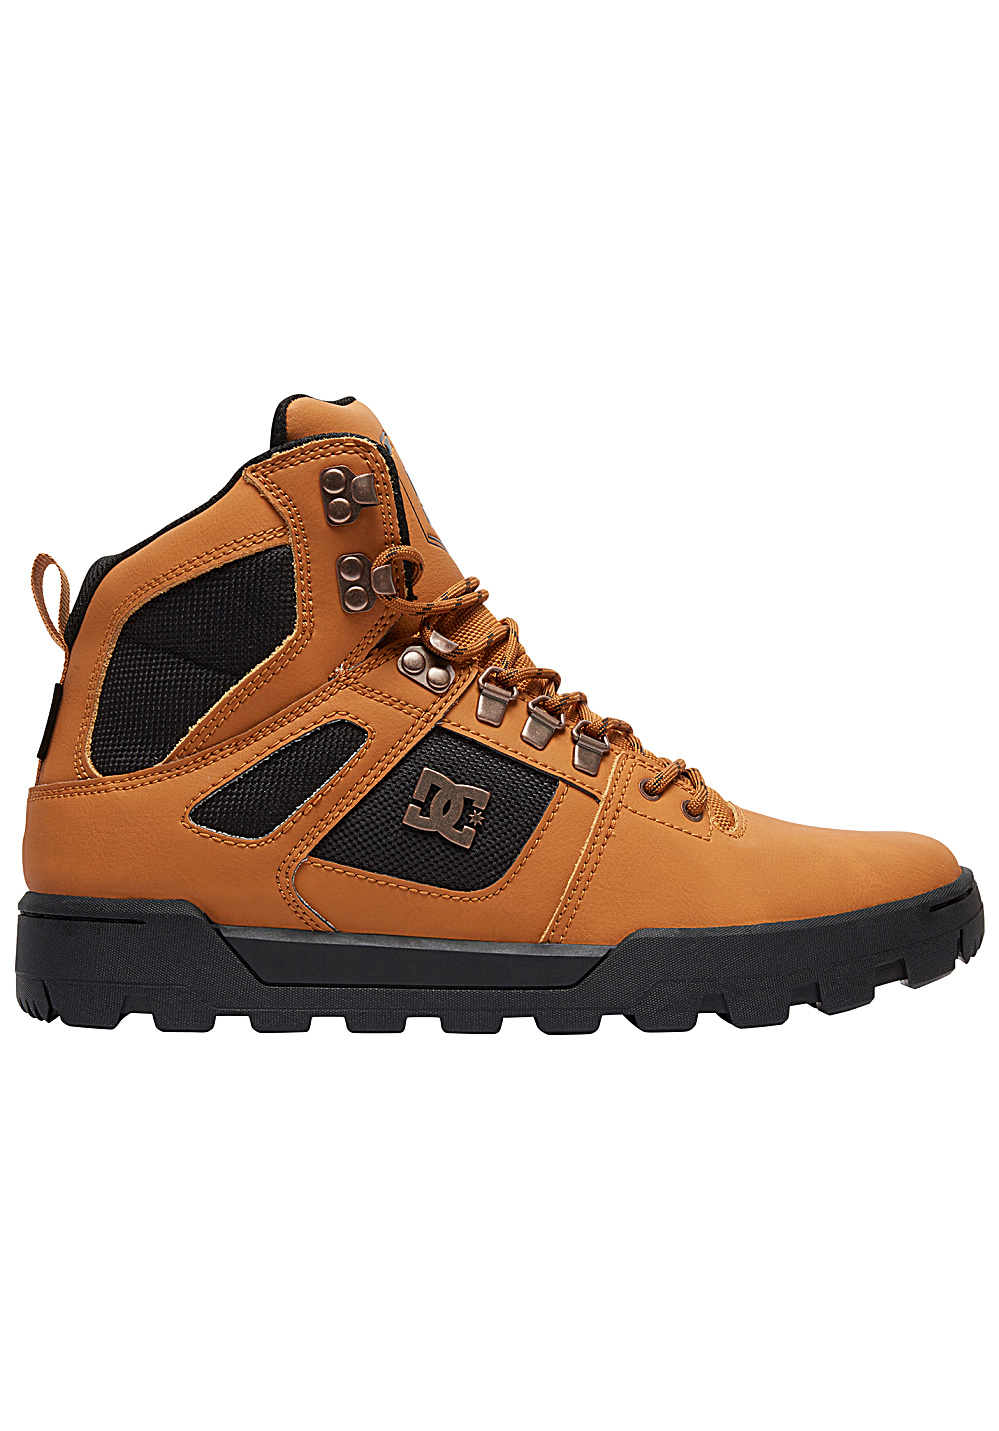 DC Spartan High Winter - Boots for Men - Brown - Planet Sports